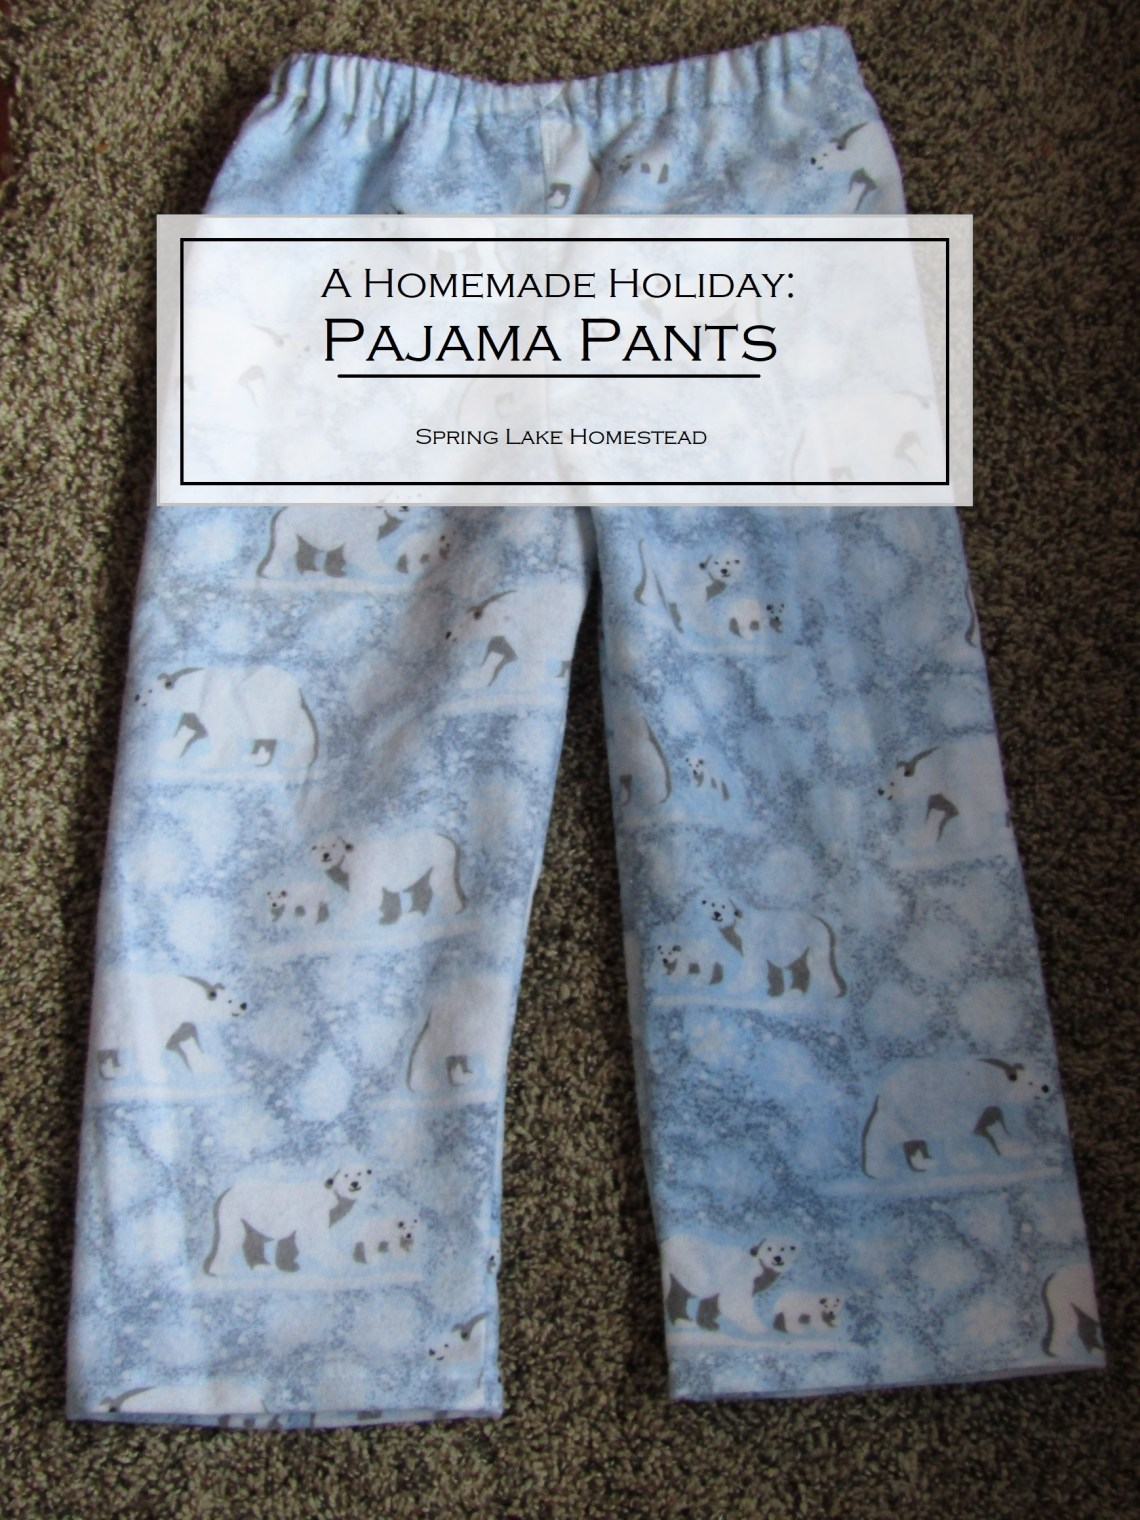 A Homemade Holiday: Pajama Pants